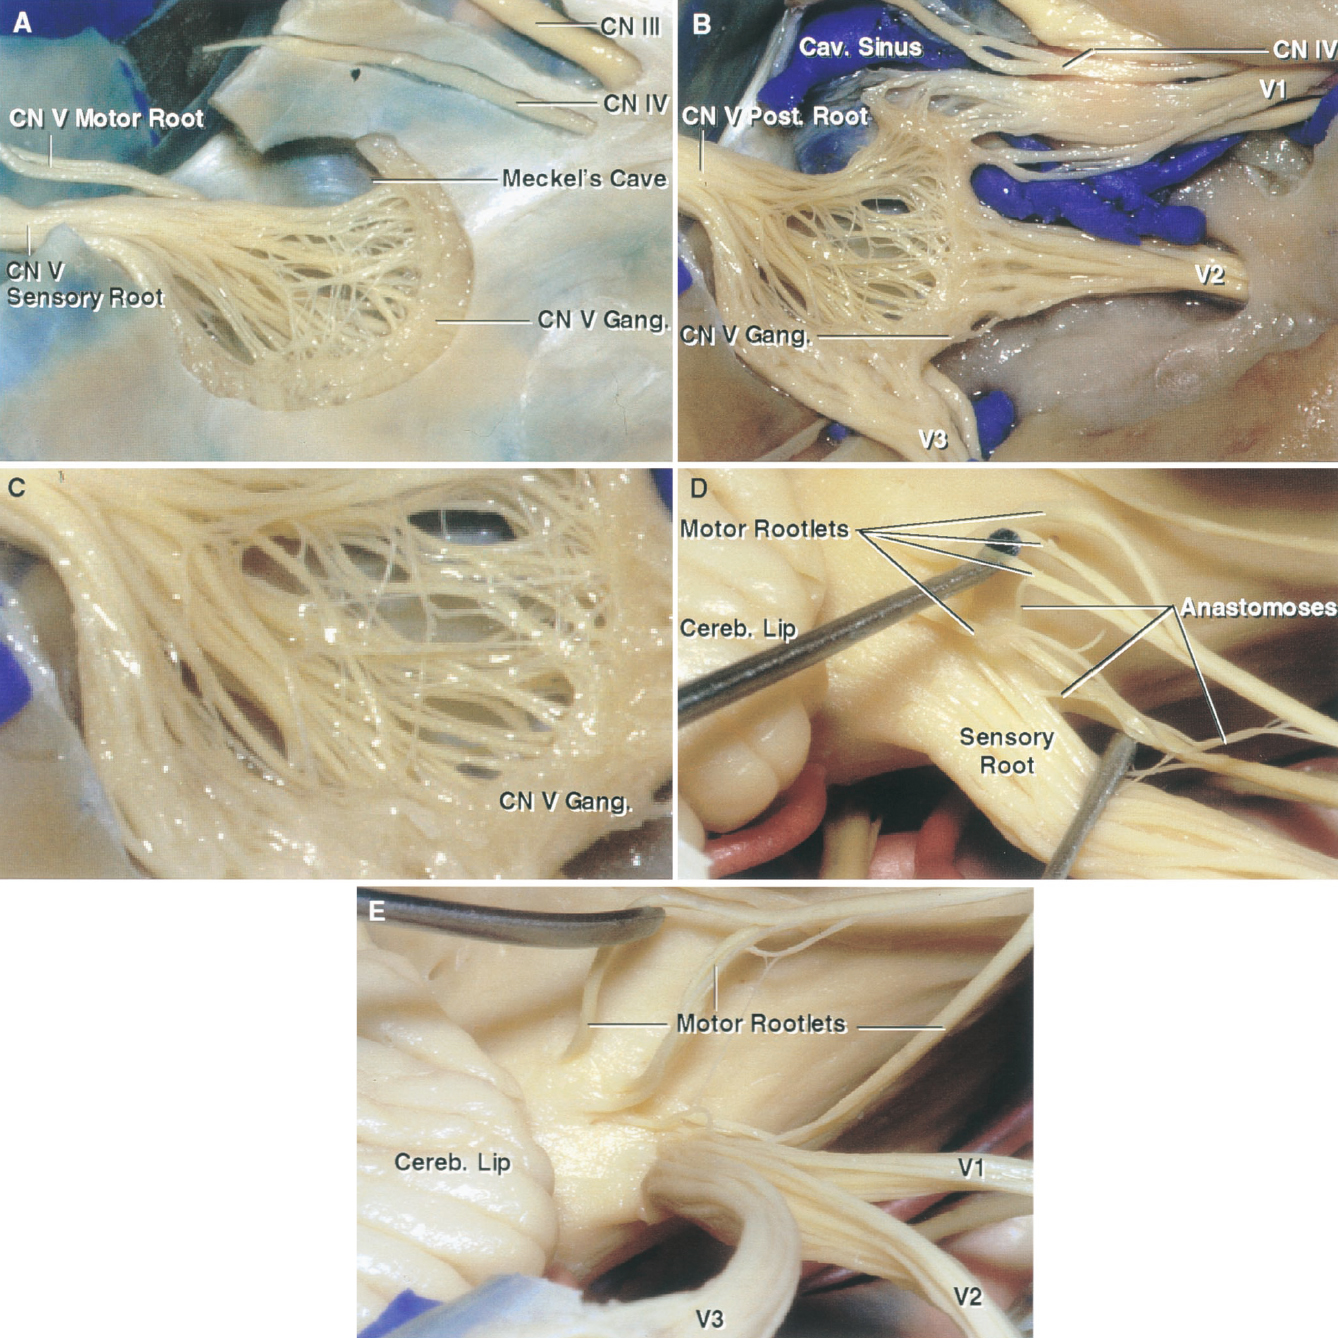 FIGURE 4.2. Lateral views, right trigeminal nerve. A, Meckel's cave, the cistern, which extends forward from the posterior fossa along the posterior trigeminal root to the level of the mid portion of the ganglion, has been exposed by removing the lateral dural wall of the cave. The motor root arises rostral to the sensory root and passes through Meckel's cave on the medial side of the posterior sensory root and ganglion. B, the dura has been removed to expose the posterior root and ganglion and the three trigeminal divisions. There are diffuse anastomoses between the rootlets posterior to the ganglion. C, enlarged view of the diffuse anastomosis in the region of Meckel's cave. D, four motor rootlets, which arise around the rostral margin of the sensory root, have been elevated to expose the anastomoses between the motor and sensory roots. The cerebellar lip projects forward and may hide the junction of the sensory root with the pons in the retrosigmoid approach. E, a cleavage plane has been started anteriorly and extended backward to the level of the posterior root. The first-division fibers are rostromedial within the posterior root and the third-division fibers caudolateral with the second division being in an intermediate location. Cav., cavernous; Cereb., cerebellar; CN, cranial nerve; Gang., ganglion; Post., posterior; V., vein.